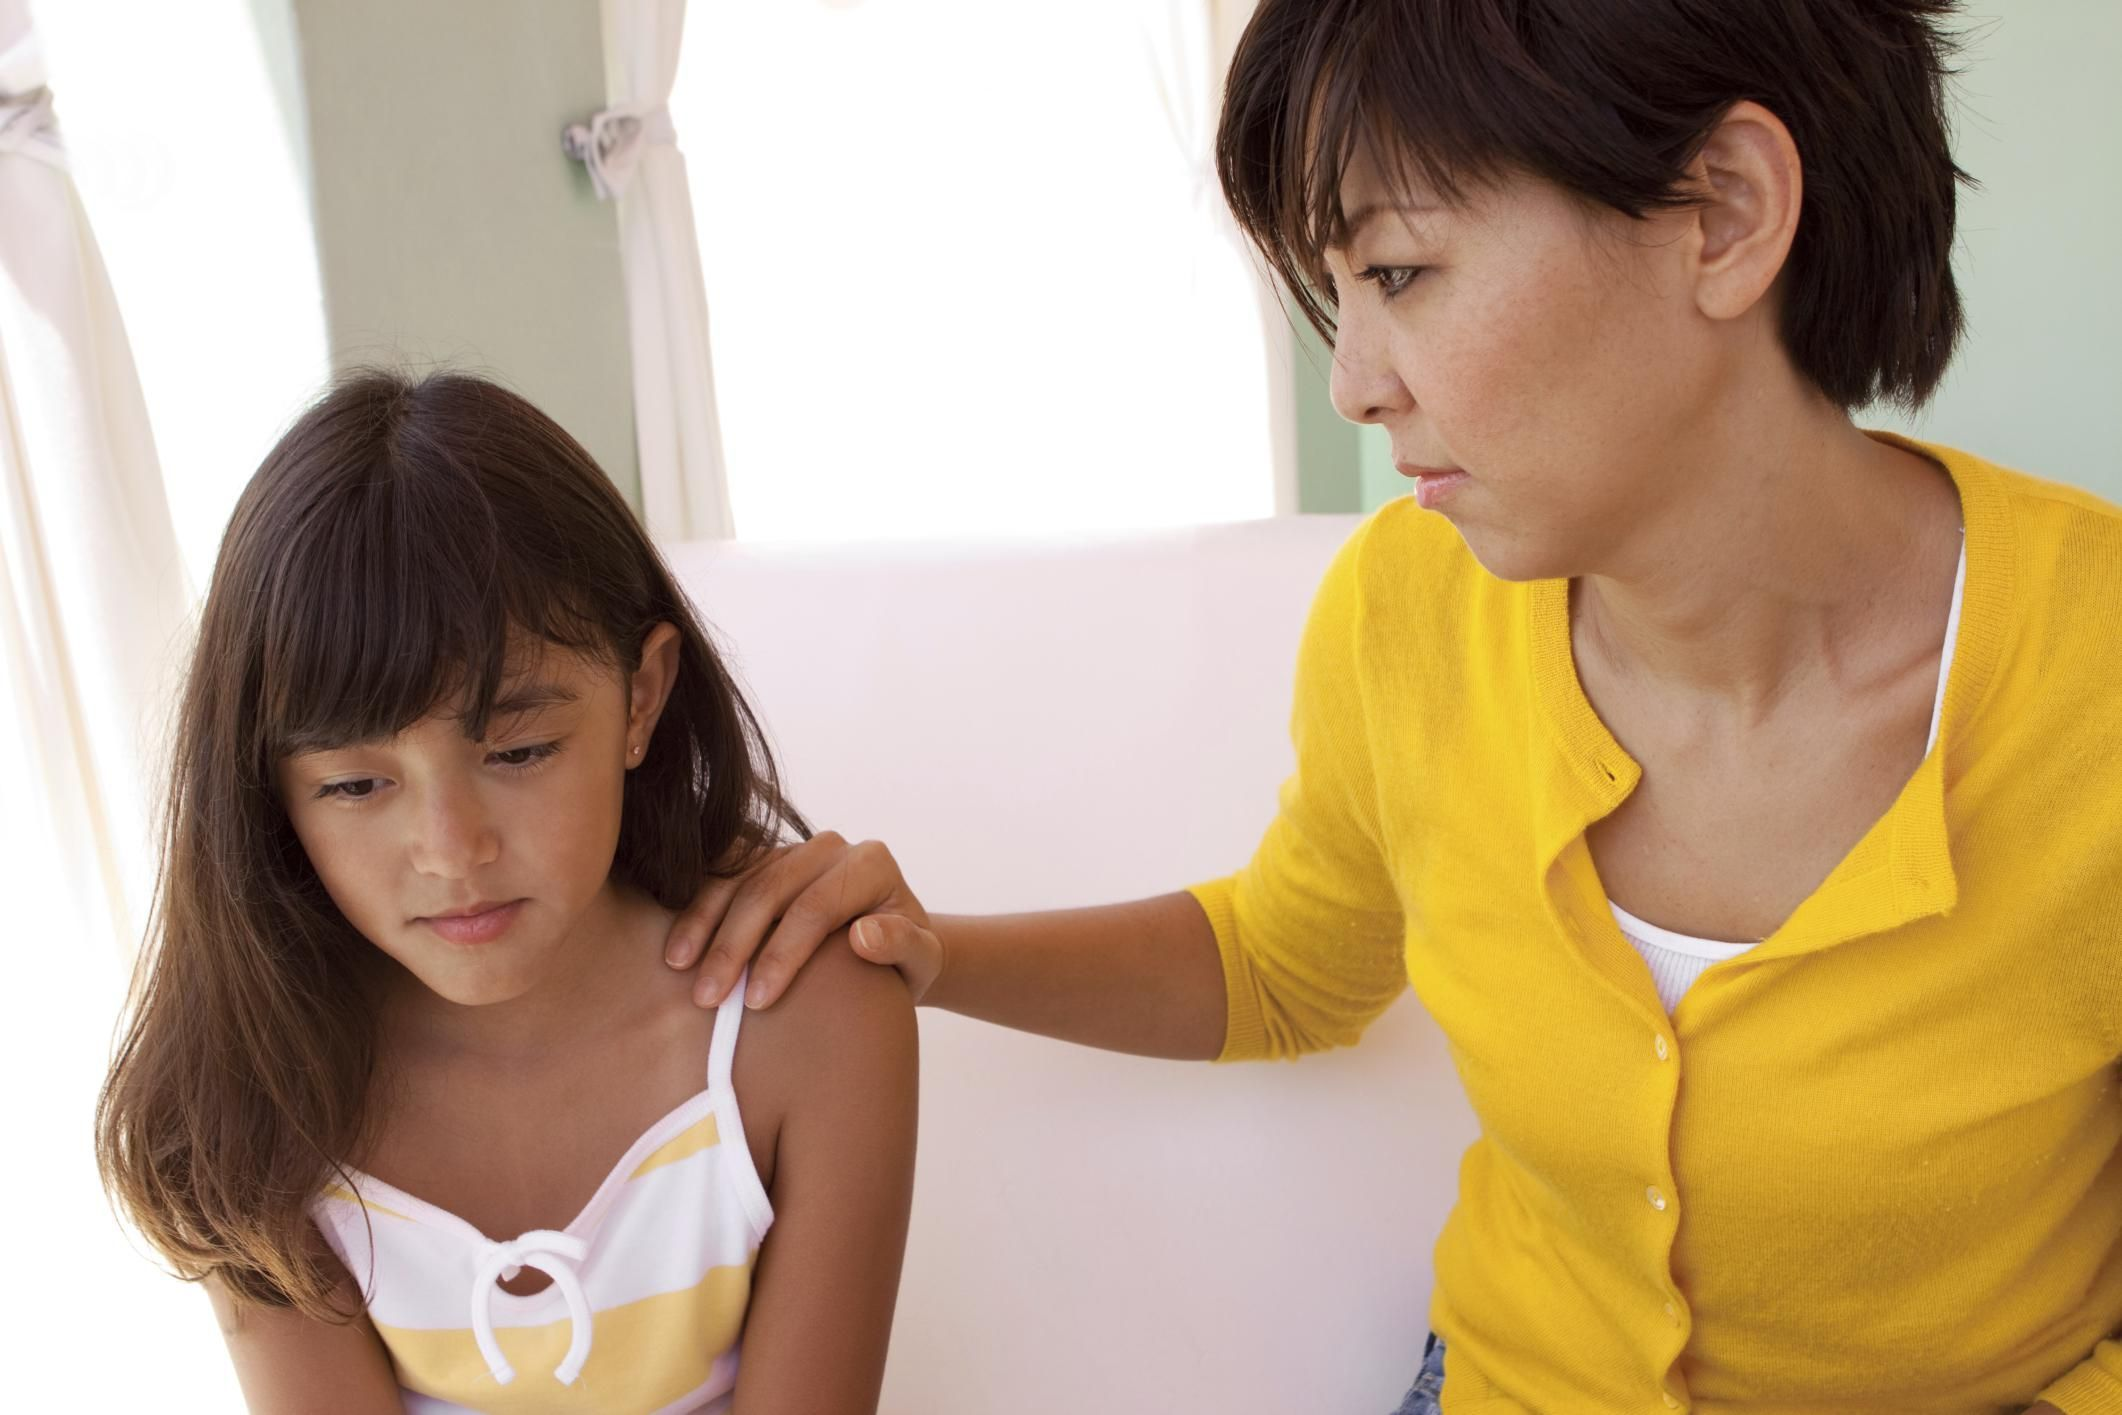 Child Discipline: Traditional vs Modern Approaches